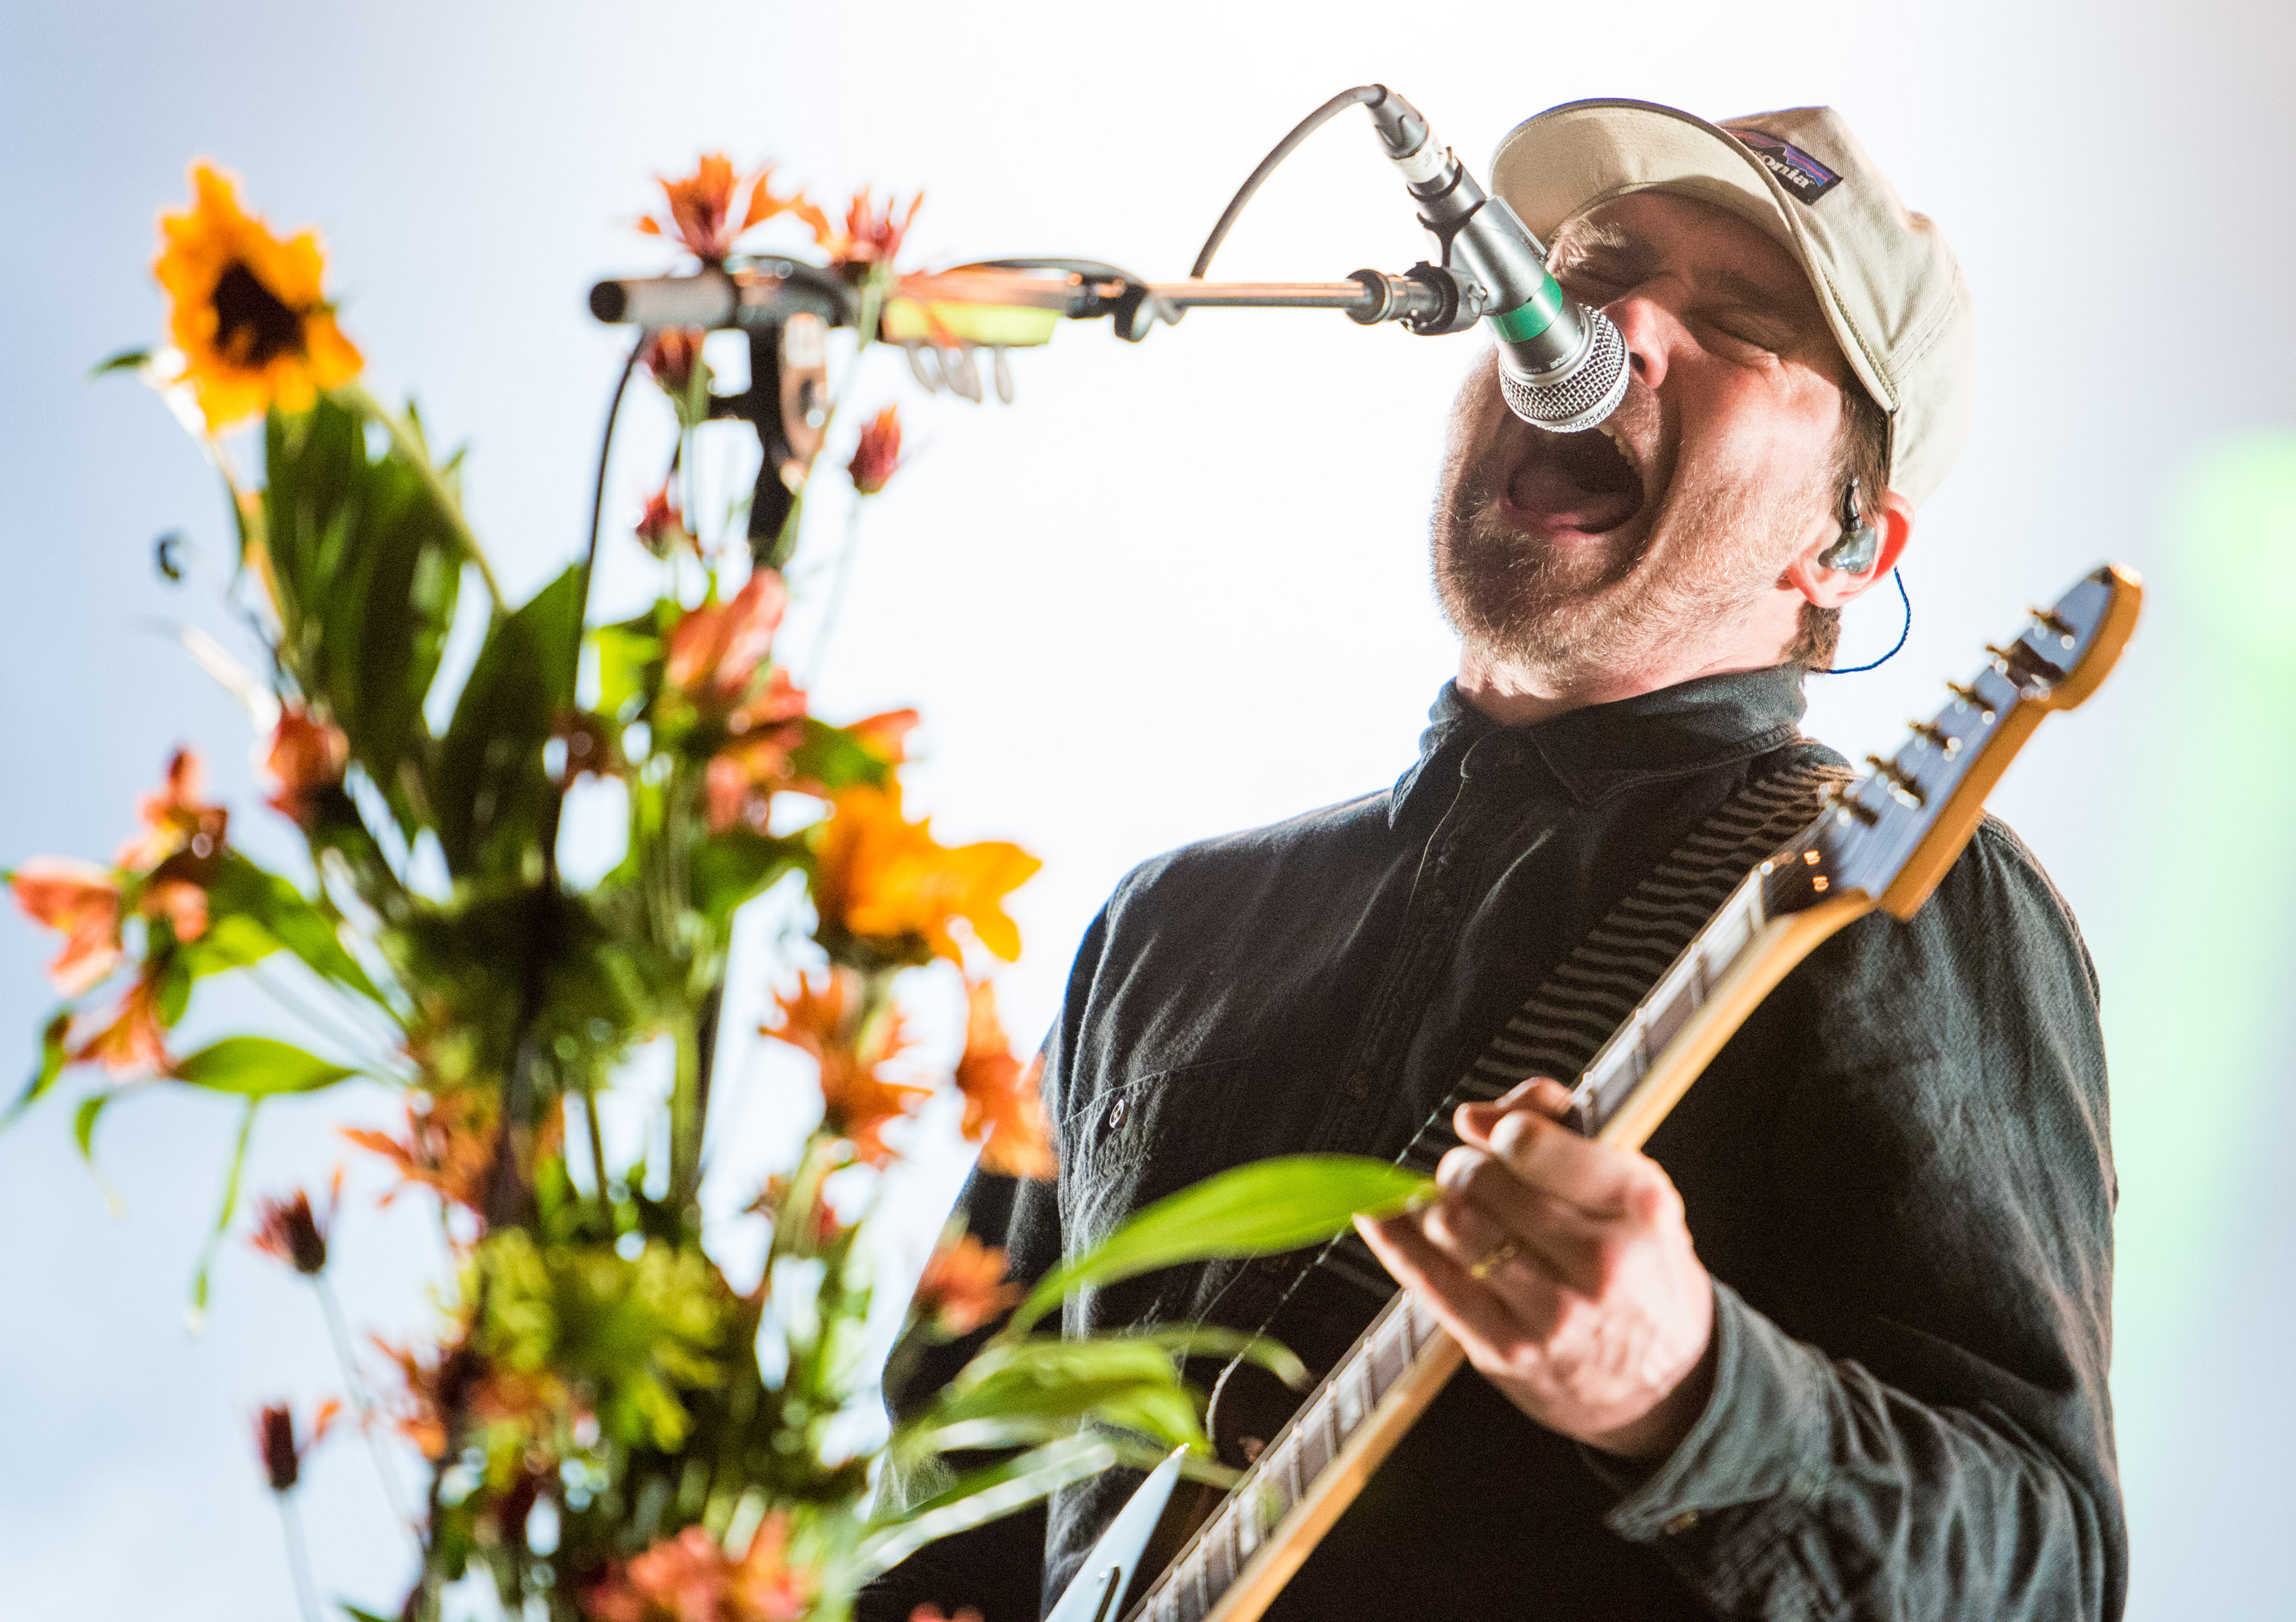 Brand New's Jesse Lacey acknowledges sexual misconduct